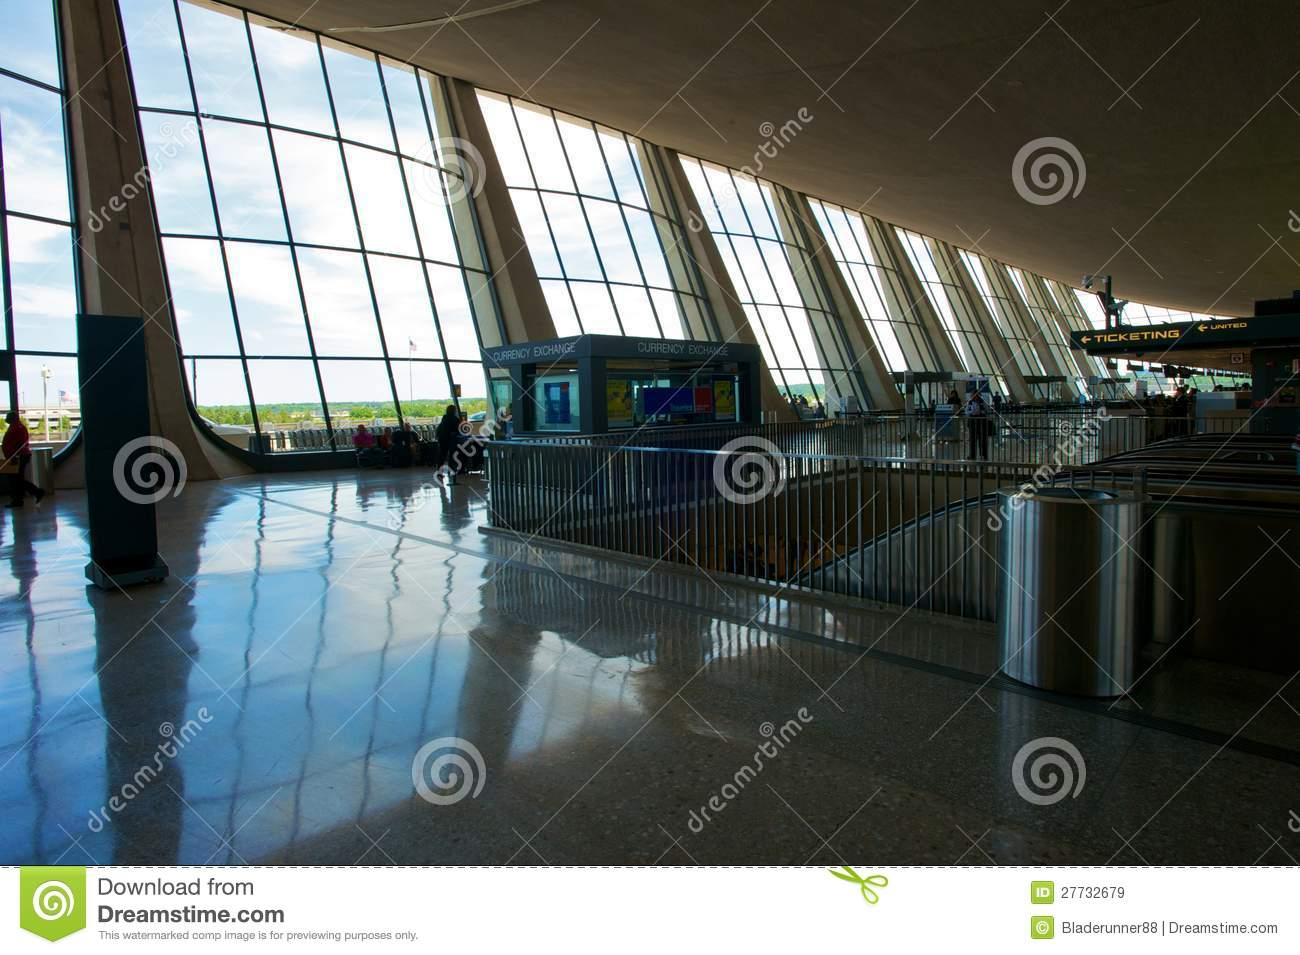 Dulles-internationaler Flughafen